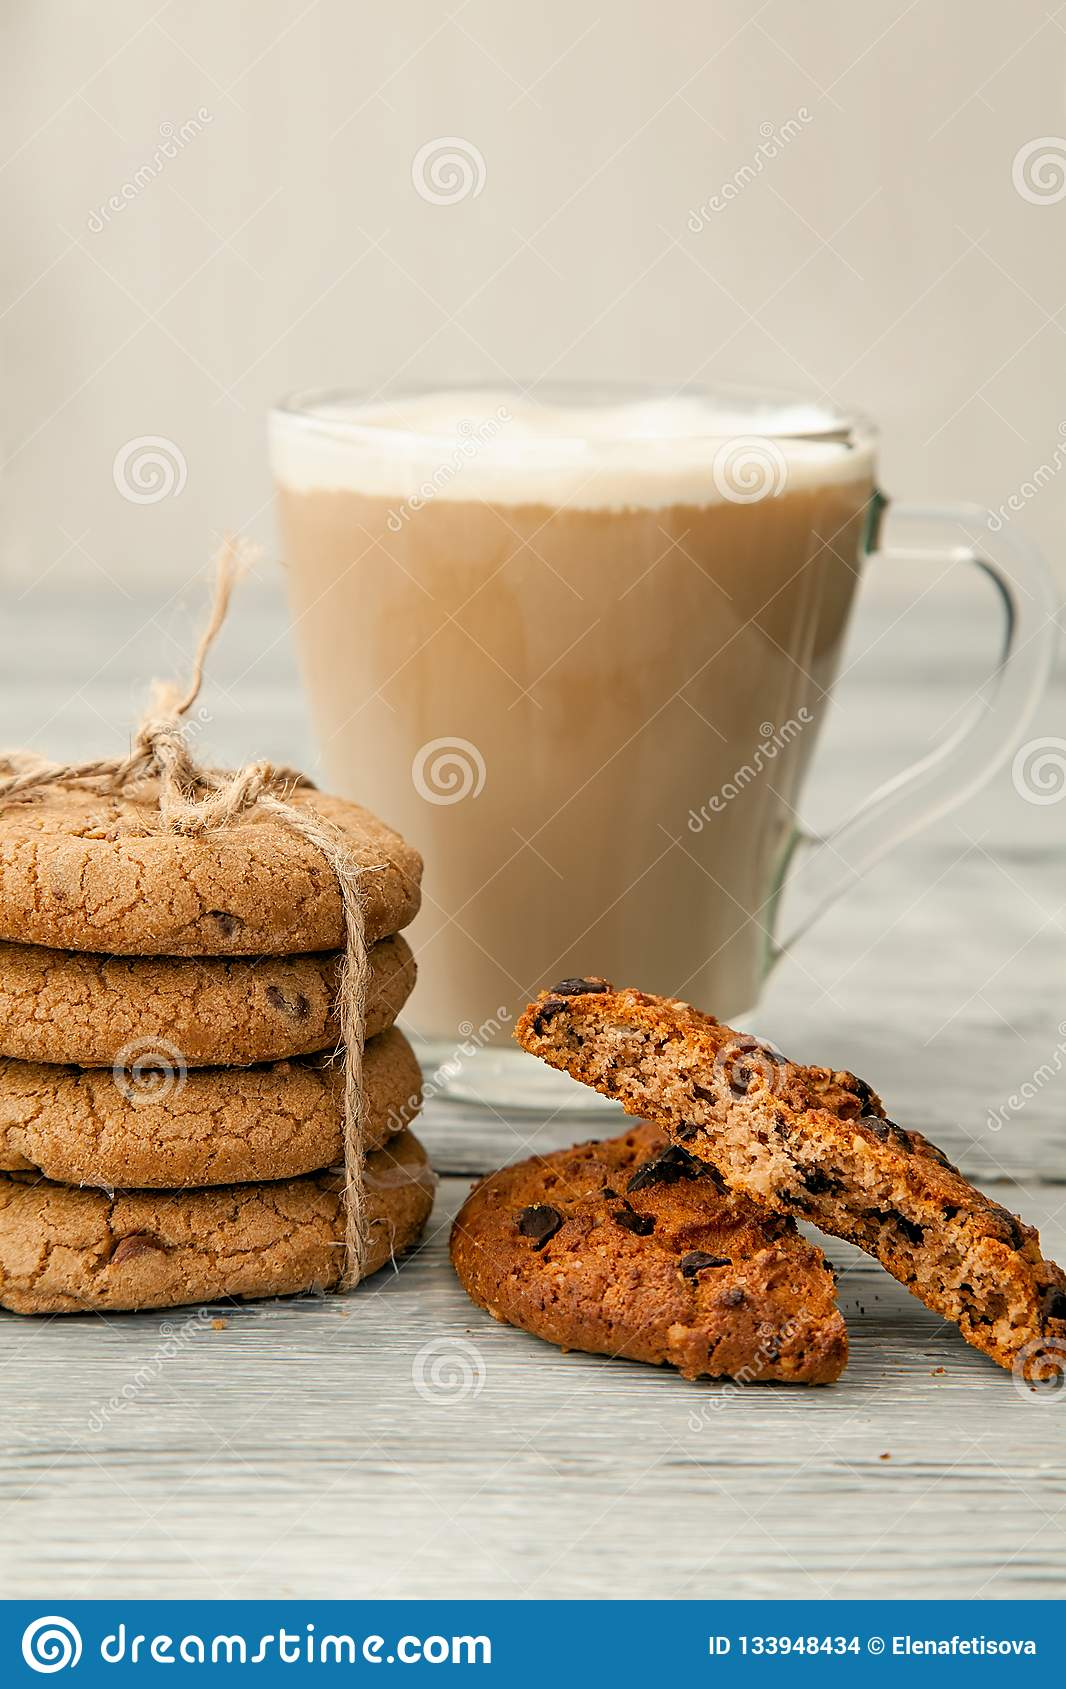 Cup Of Coffee With American Cookies On Grey Wooden Background Stock Photo - Image of food ...